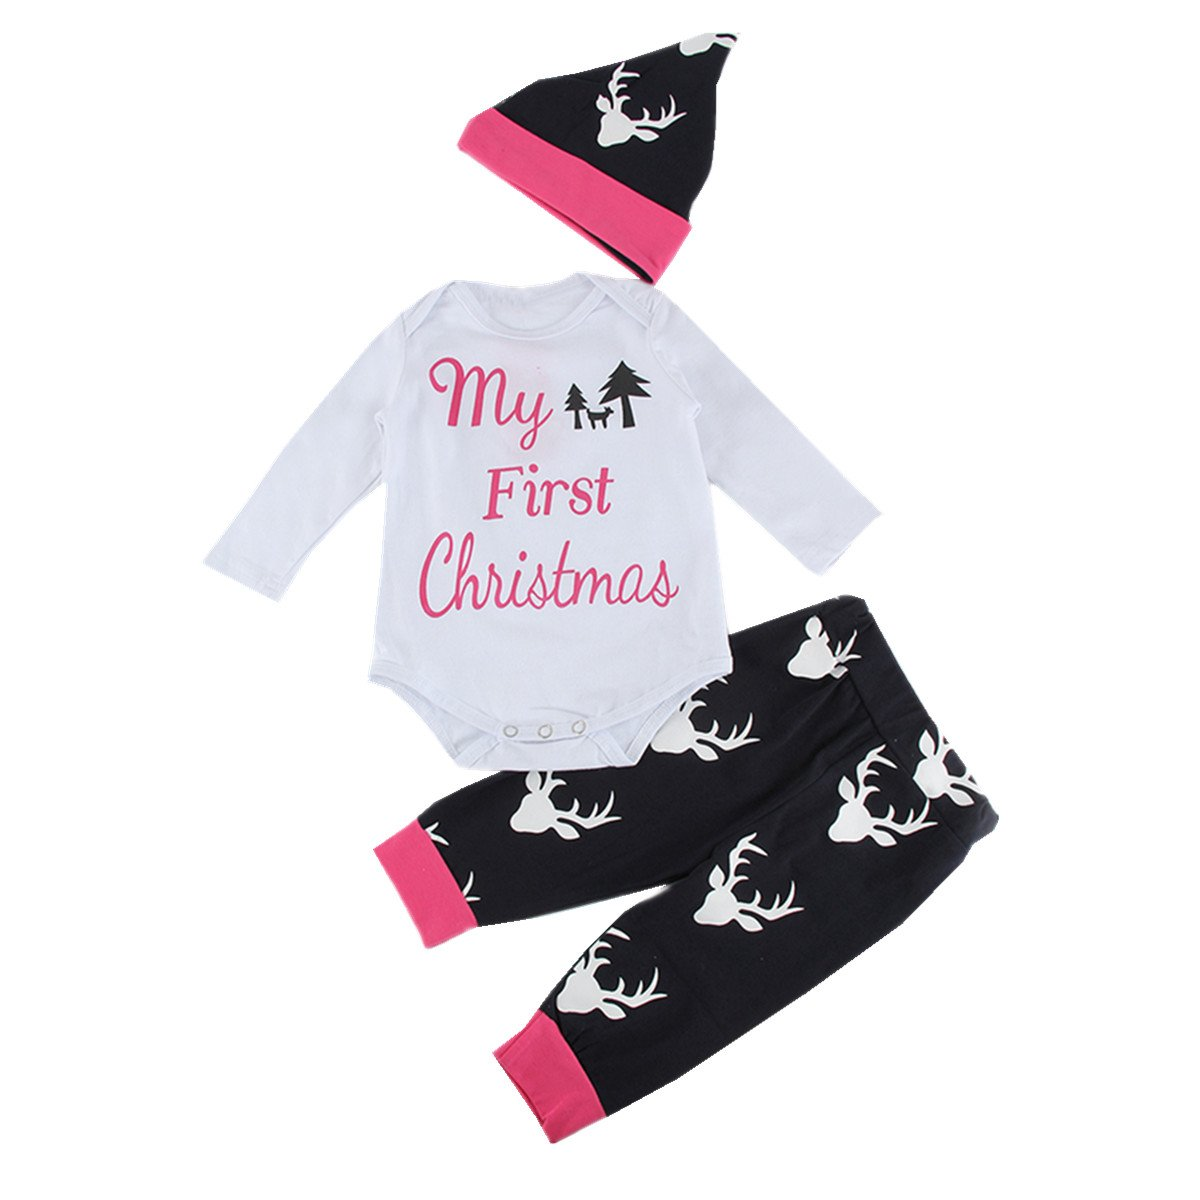 Puseky Newborn Baby My First Christmas Romper Tops+Deer Pants+Hat Outfits Set (0-6 Months)